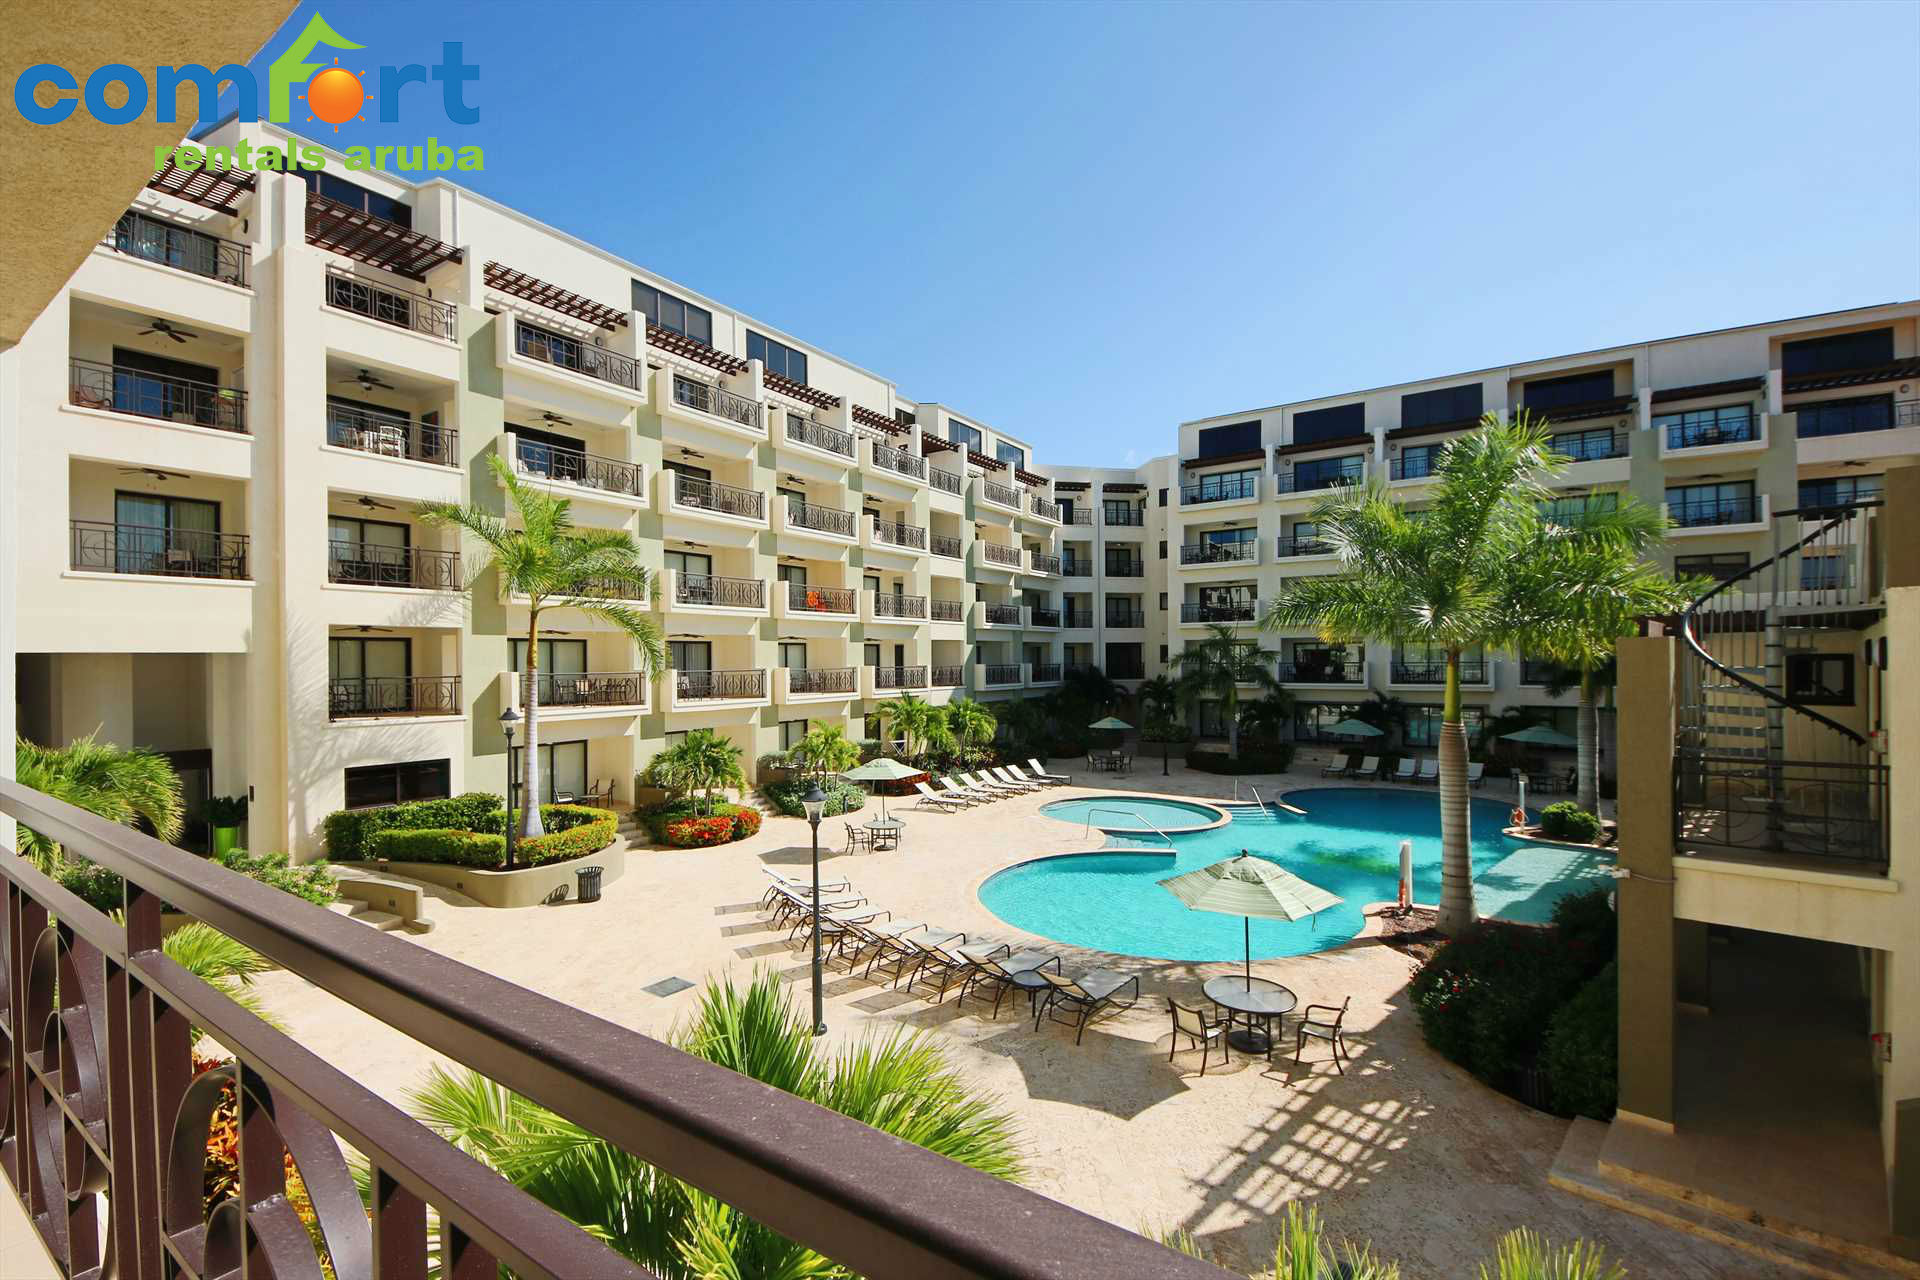 Sit on your balcony and enjoy your amazing pool view!